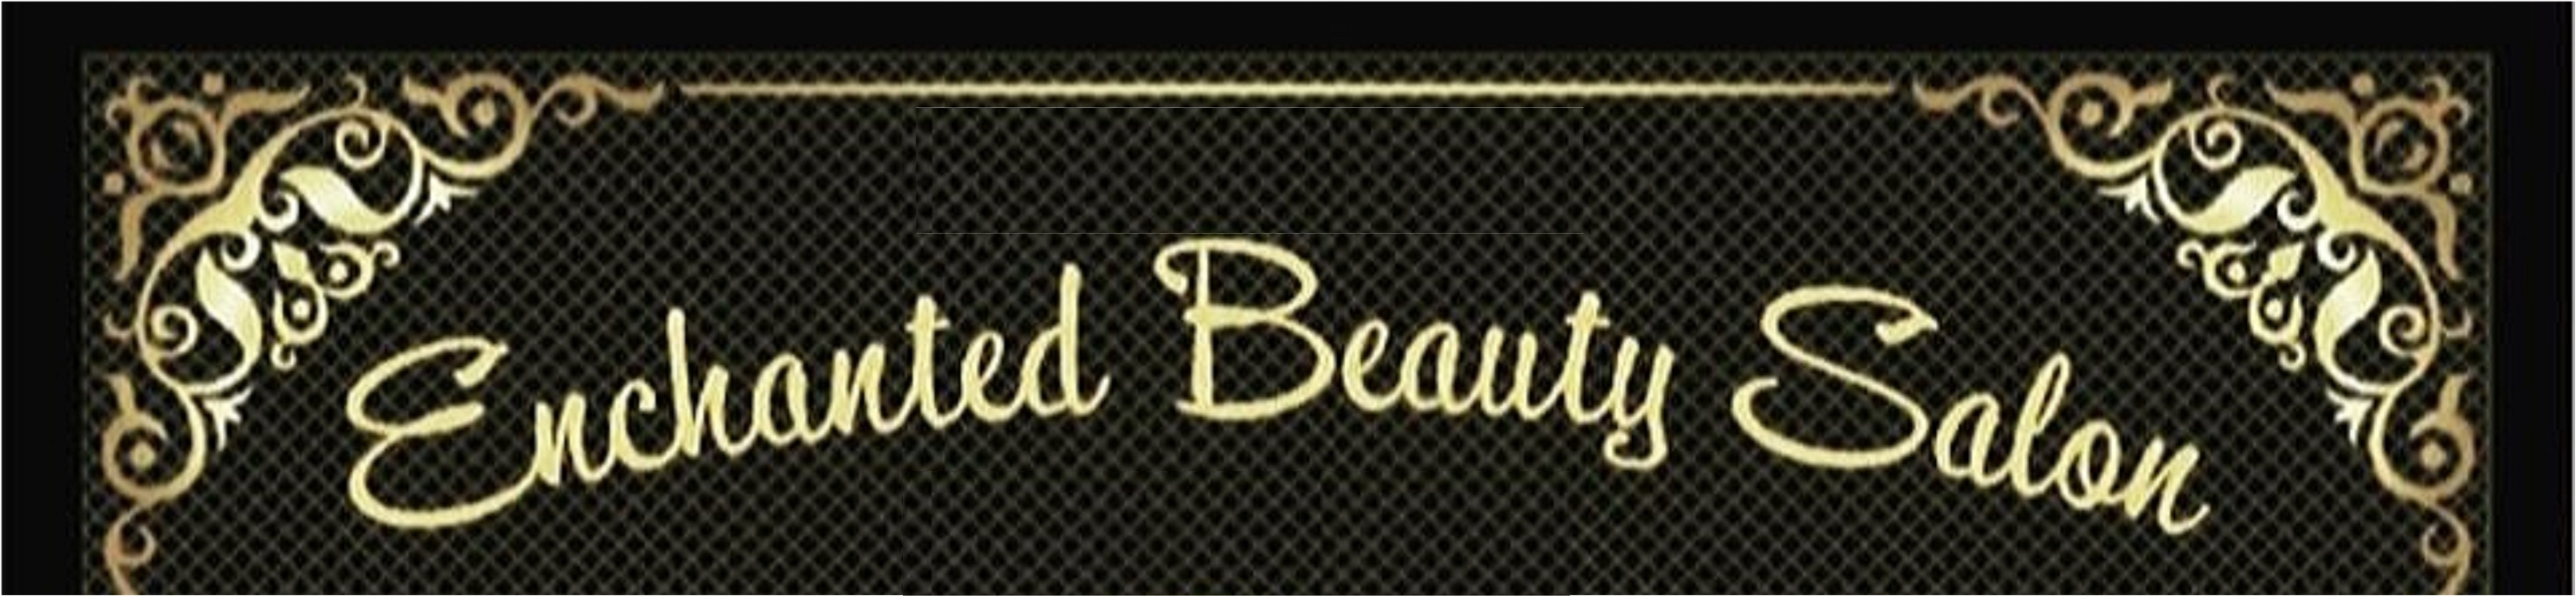 Enchanted Beauty Salon